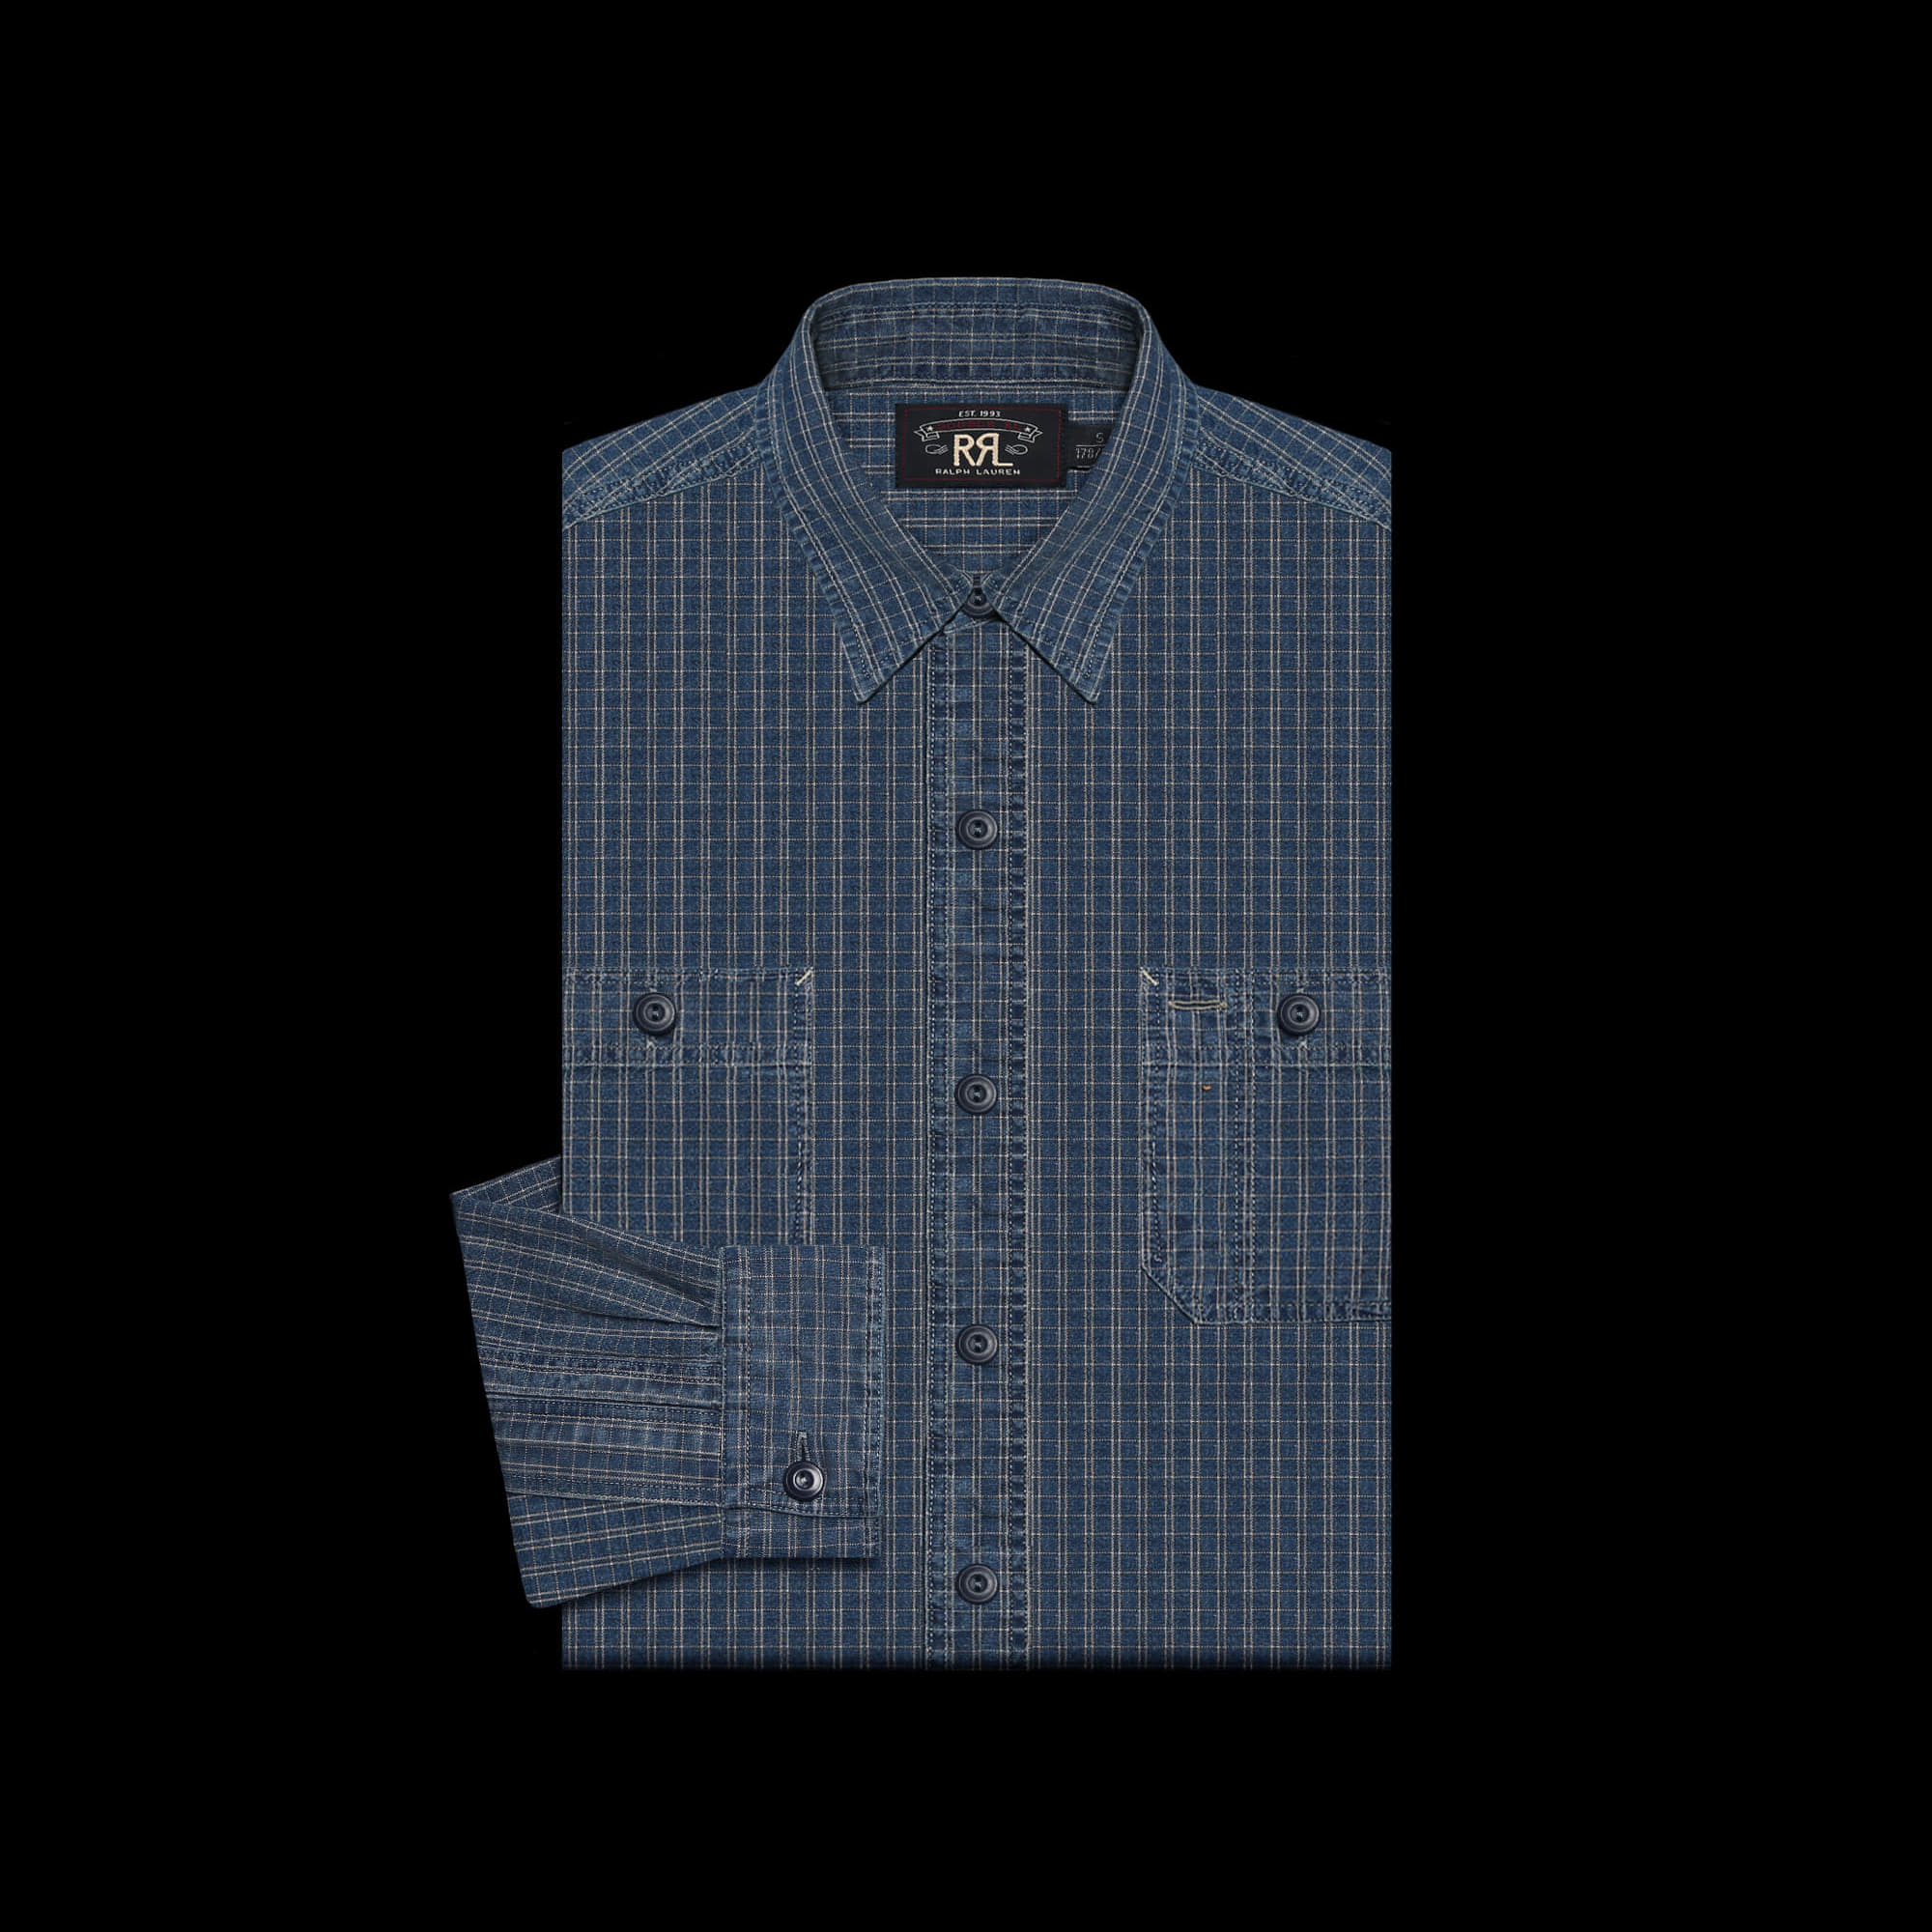 RRLCOTTON CHECK SHIRT